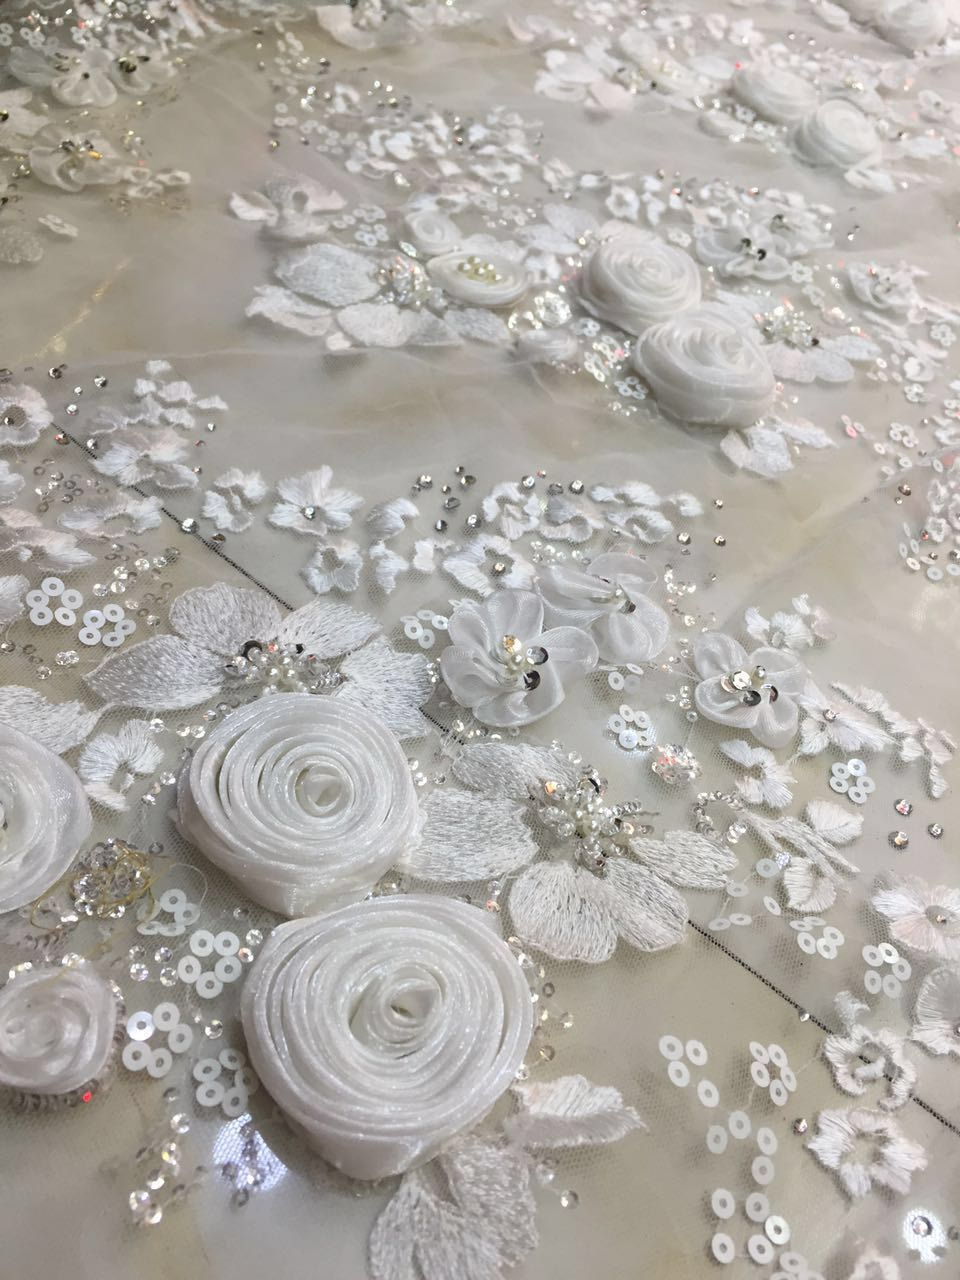 Fashion style 3D rose handmade flowers stones pearls wedding show evening  dress lace fabric 0ac1ebfe276a